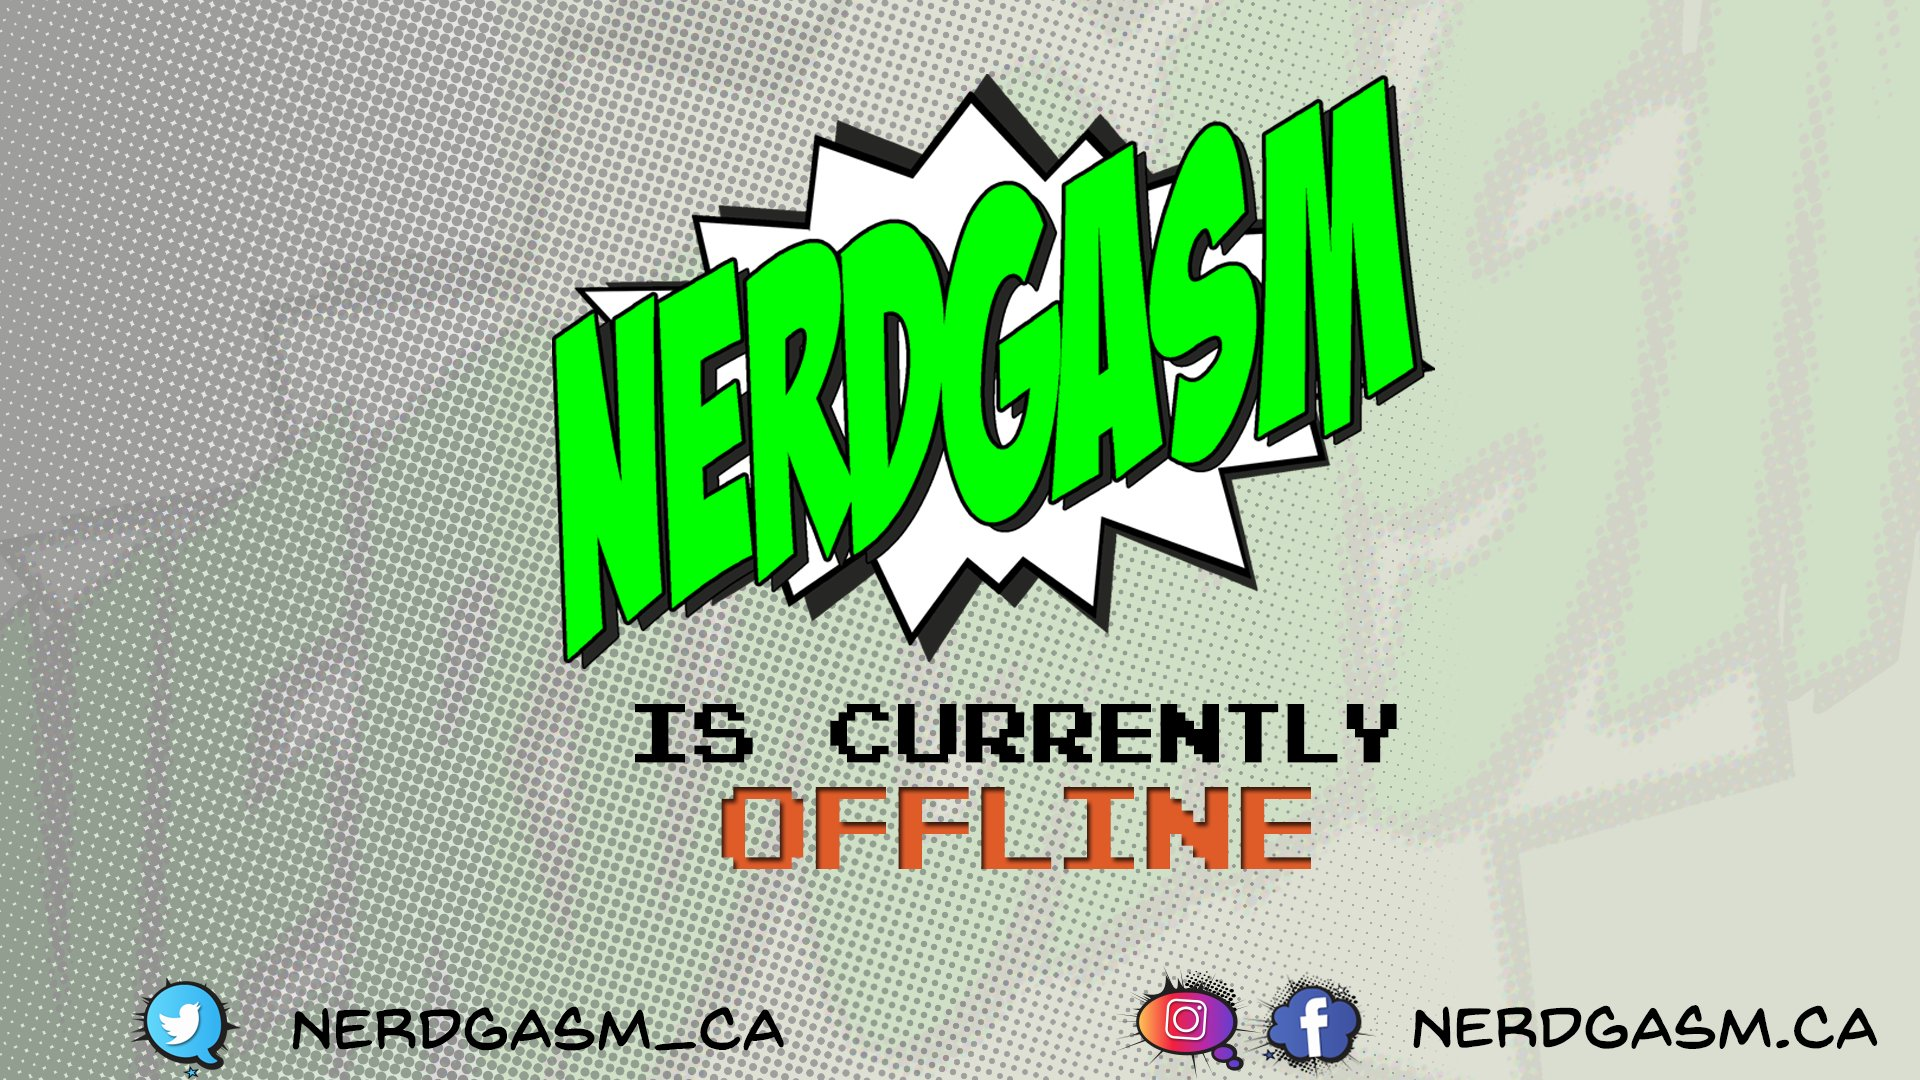 Twitch stream of Nerdgasm_CA